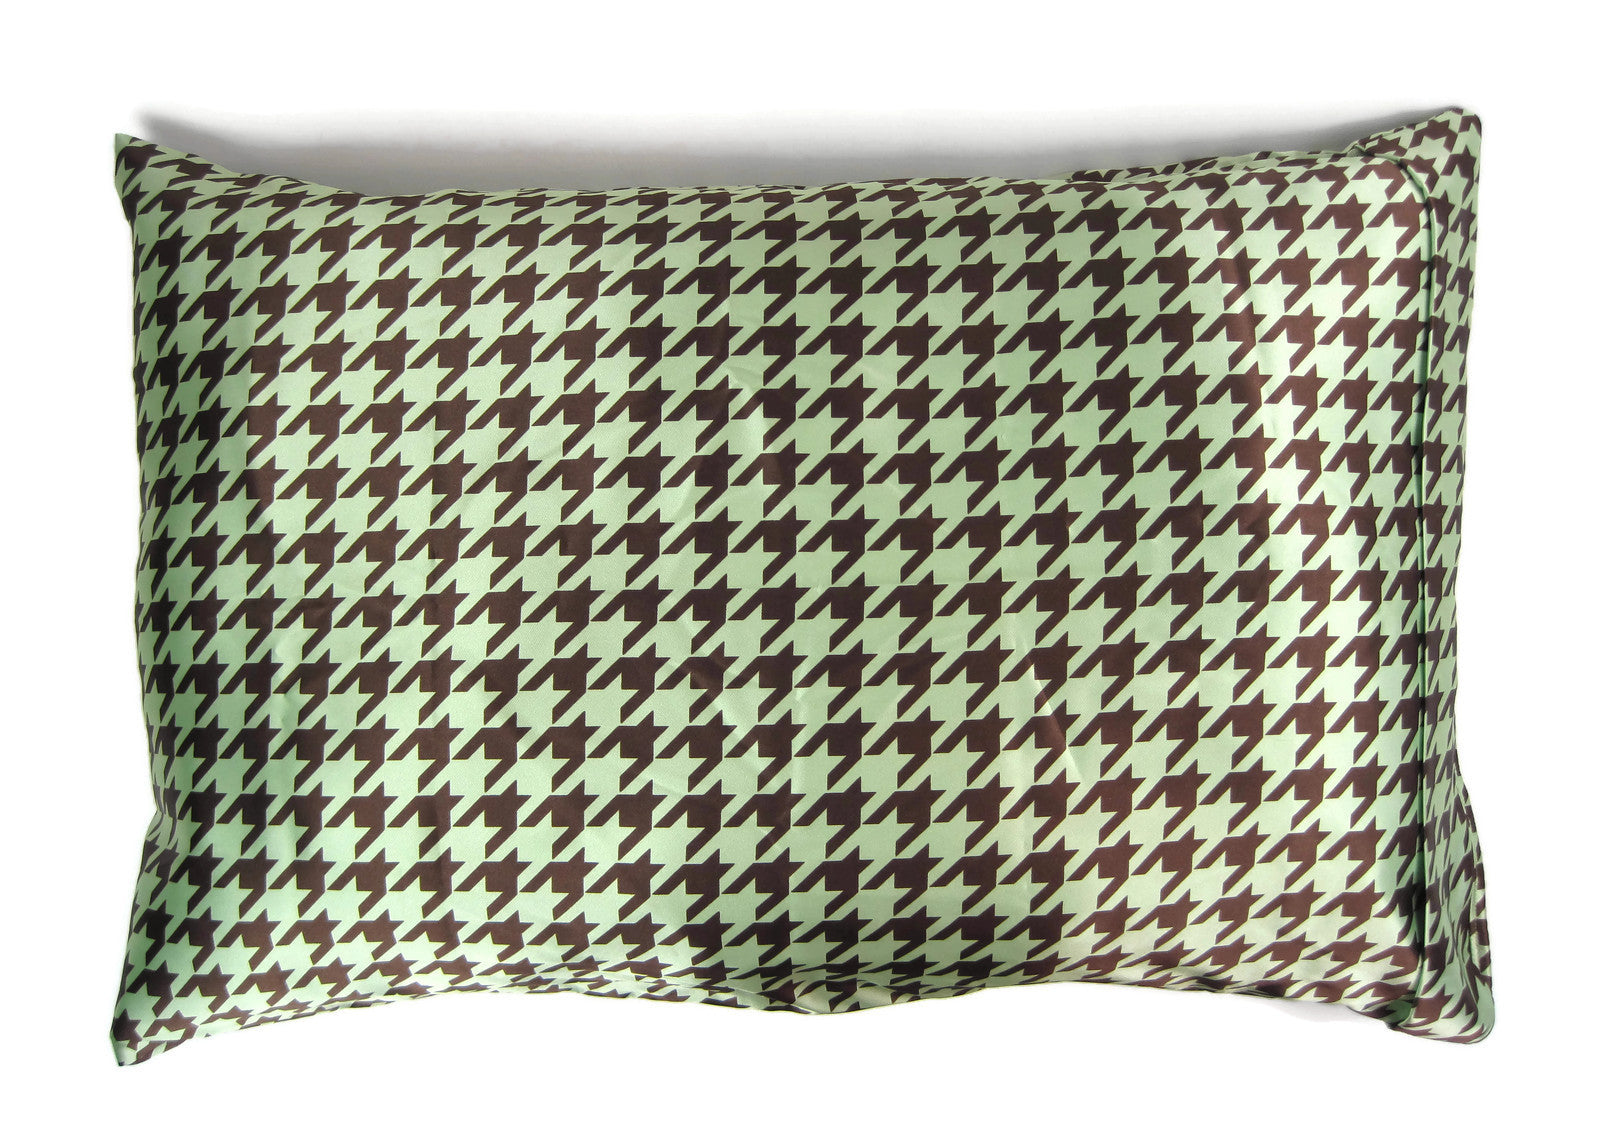 Luxe Satin Zippered Pillowcase - Houndstooth Chocolate/Mint